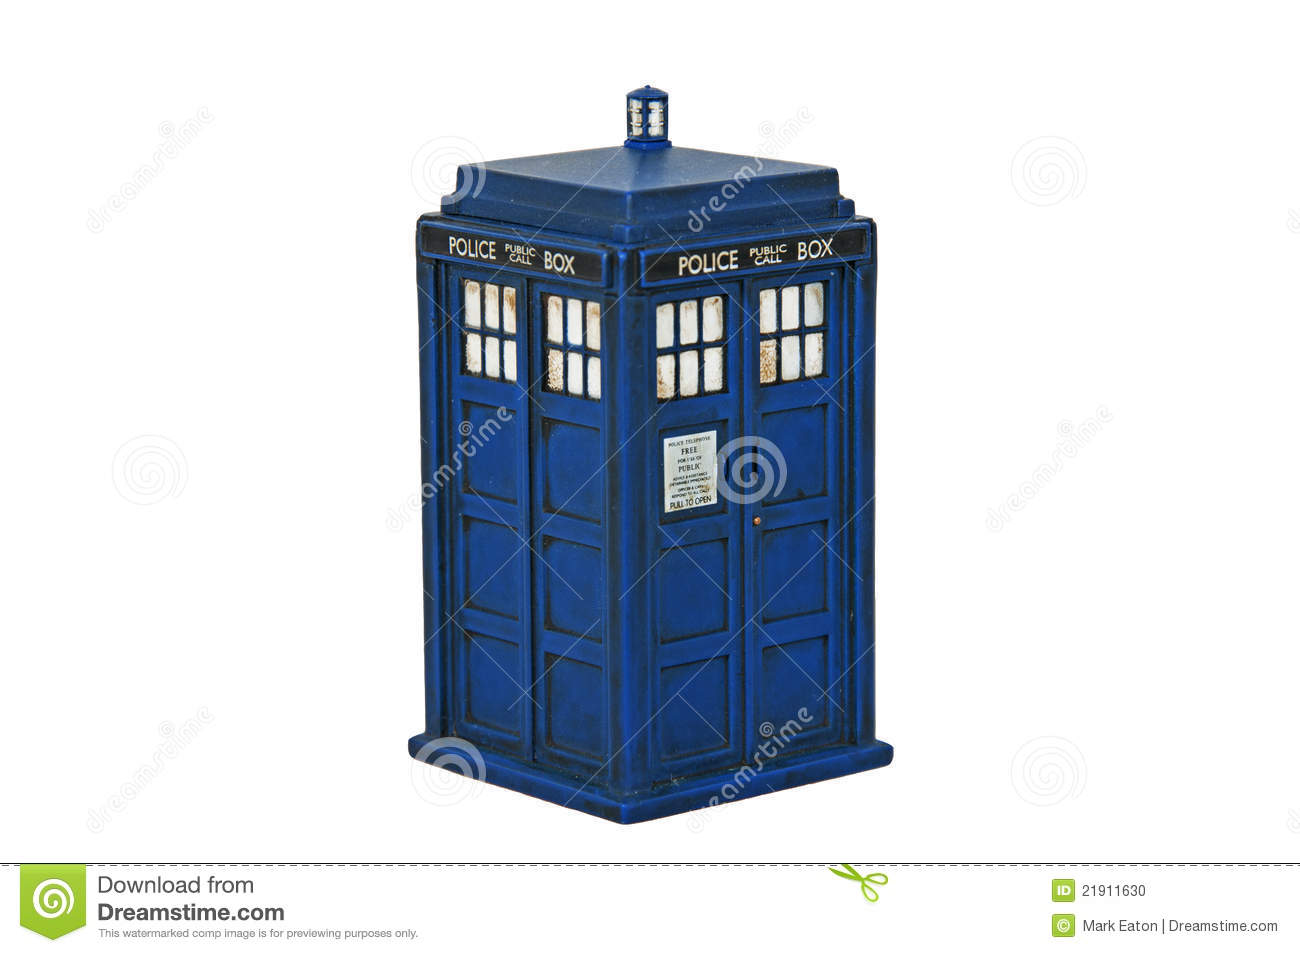 The Tardis from Dr Who